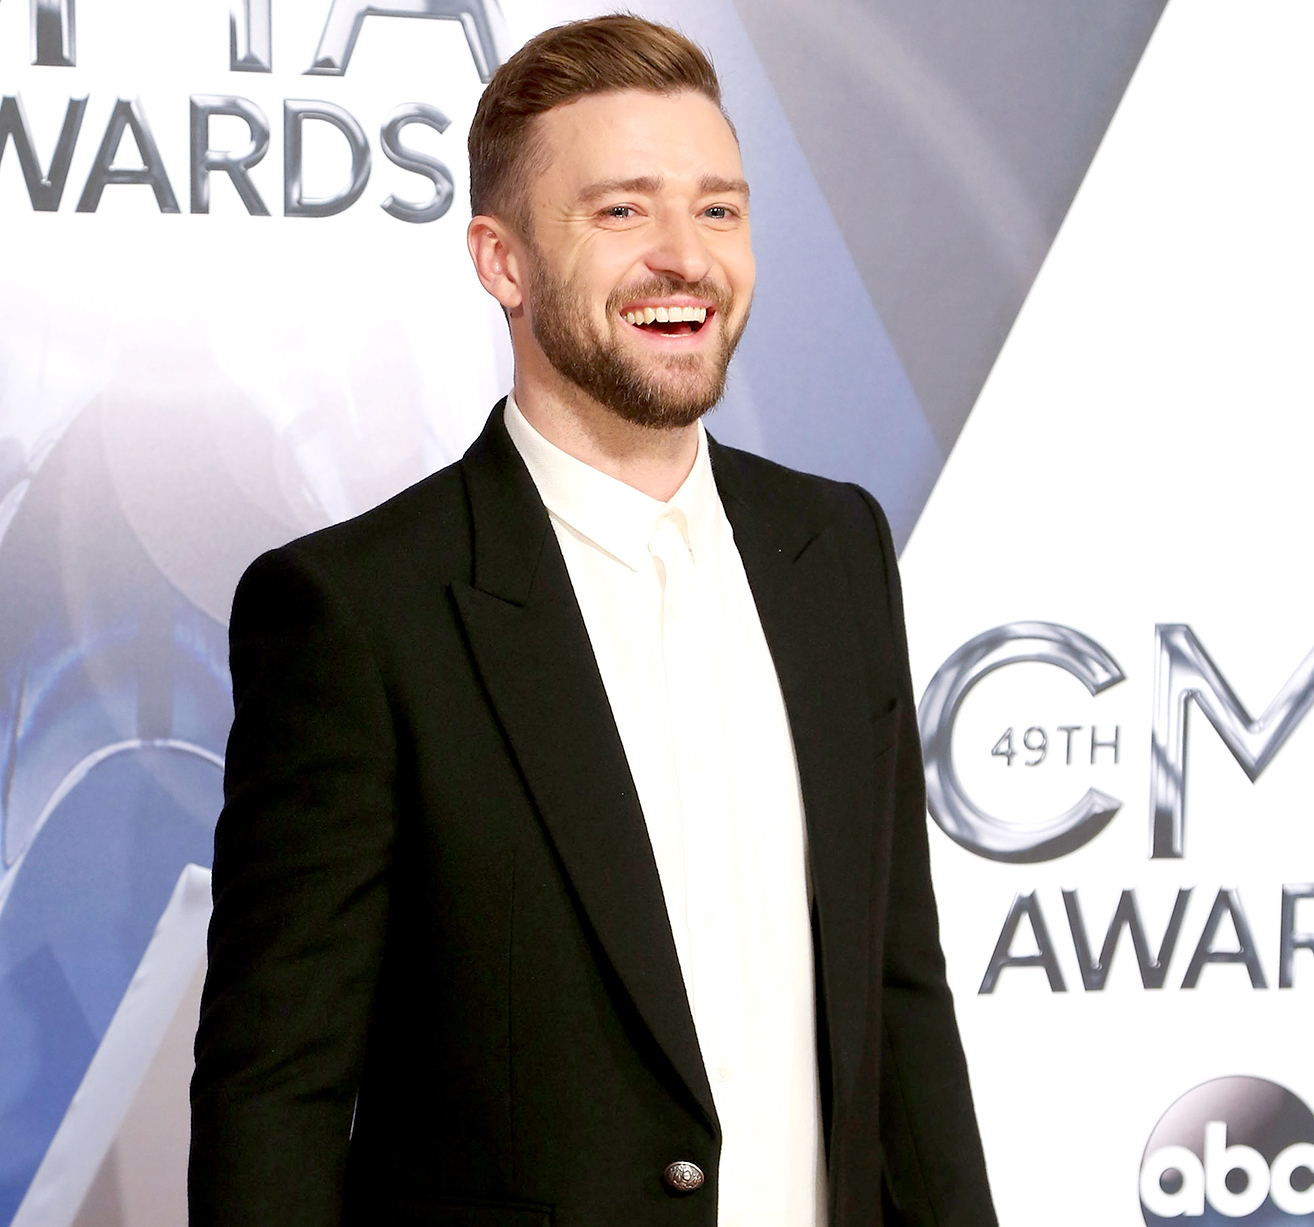 Justin Timberlake attends the 49th annual CMA Awards at the Bridgestone Arena on November 4, 2015 in Nashville, Tennessee.